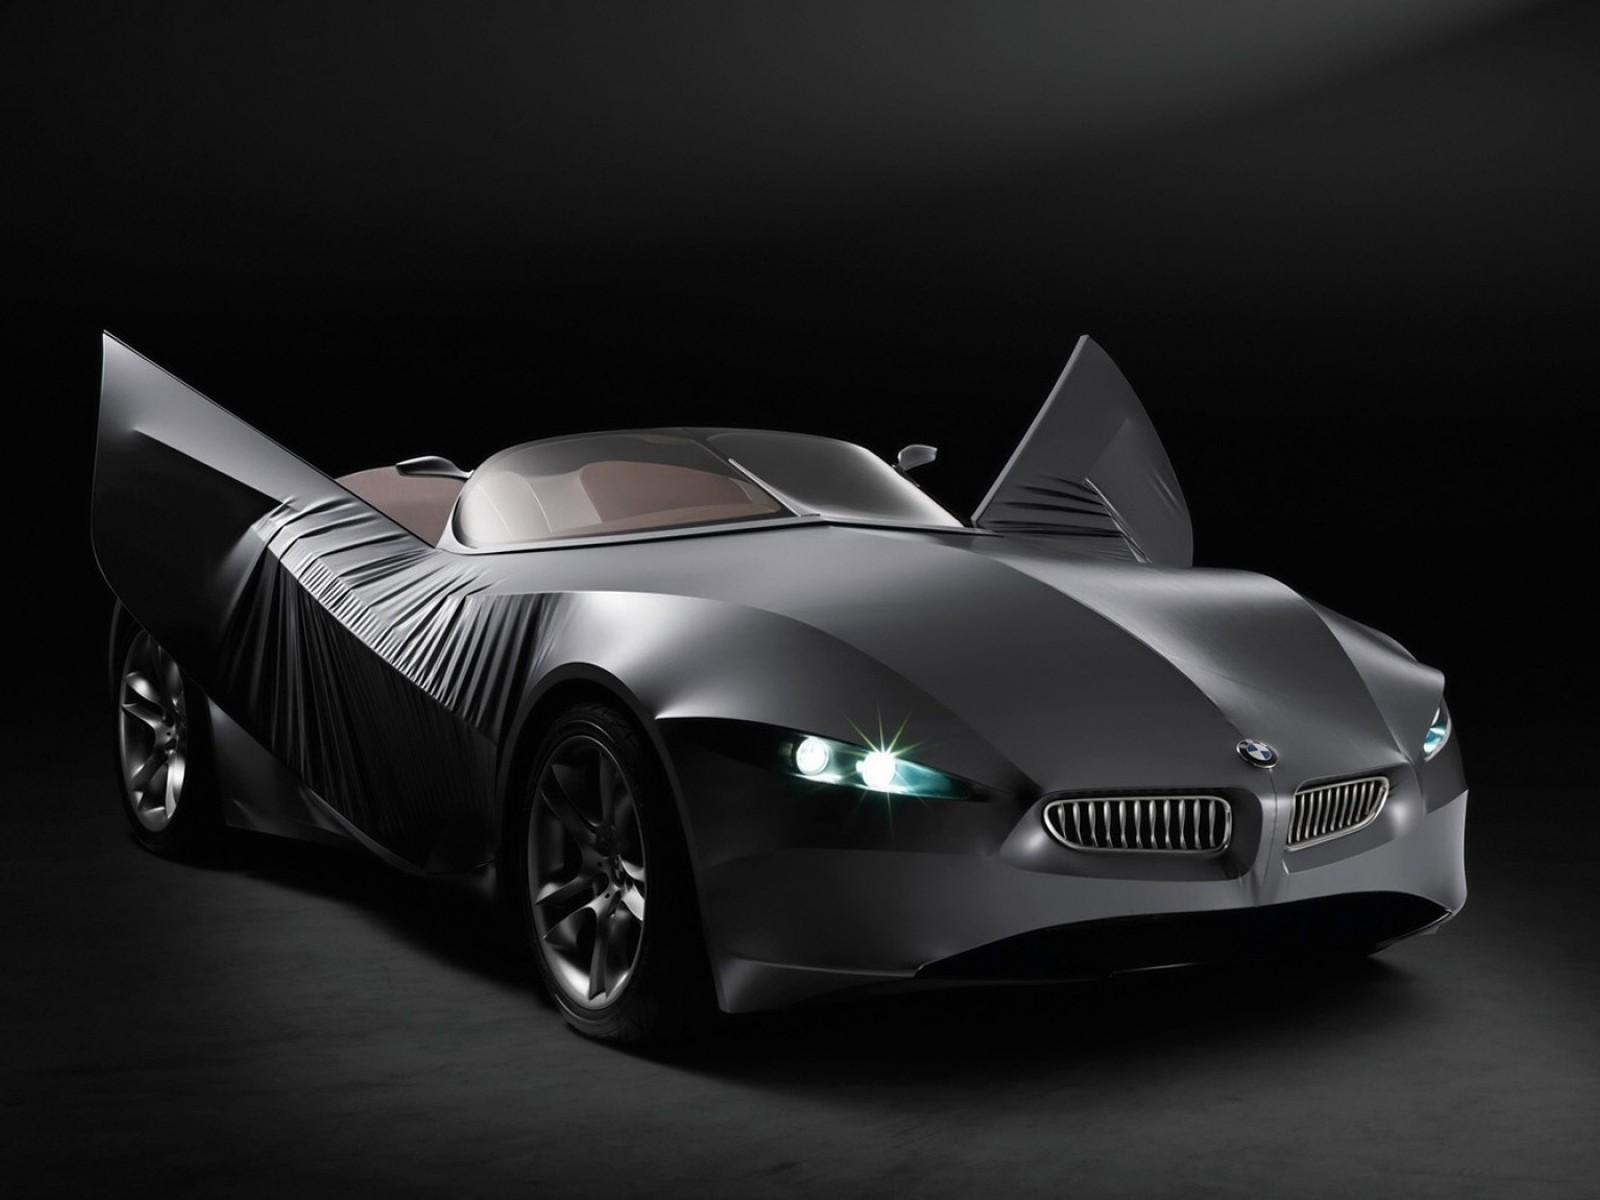 Free Cars Hd Wallpapers Bmw Gina Concept Cars Hd Wallpapers